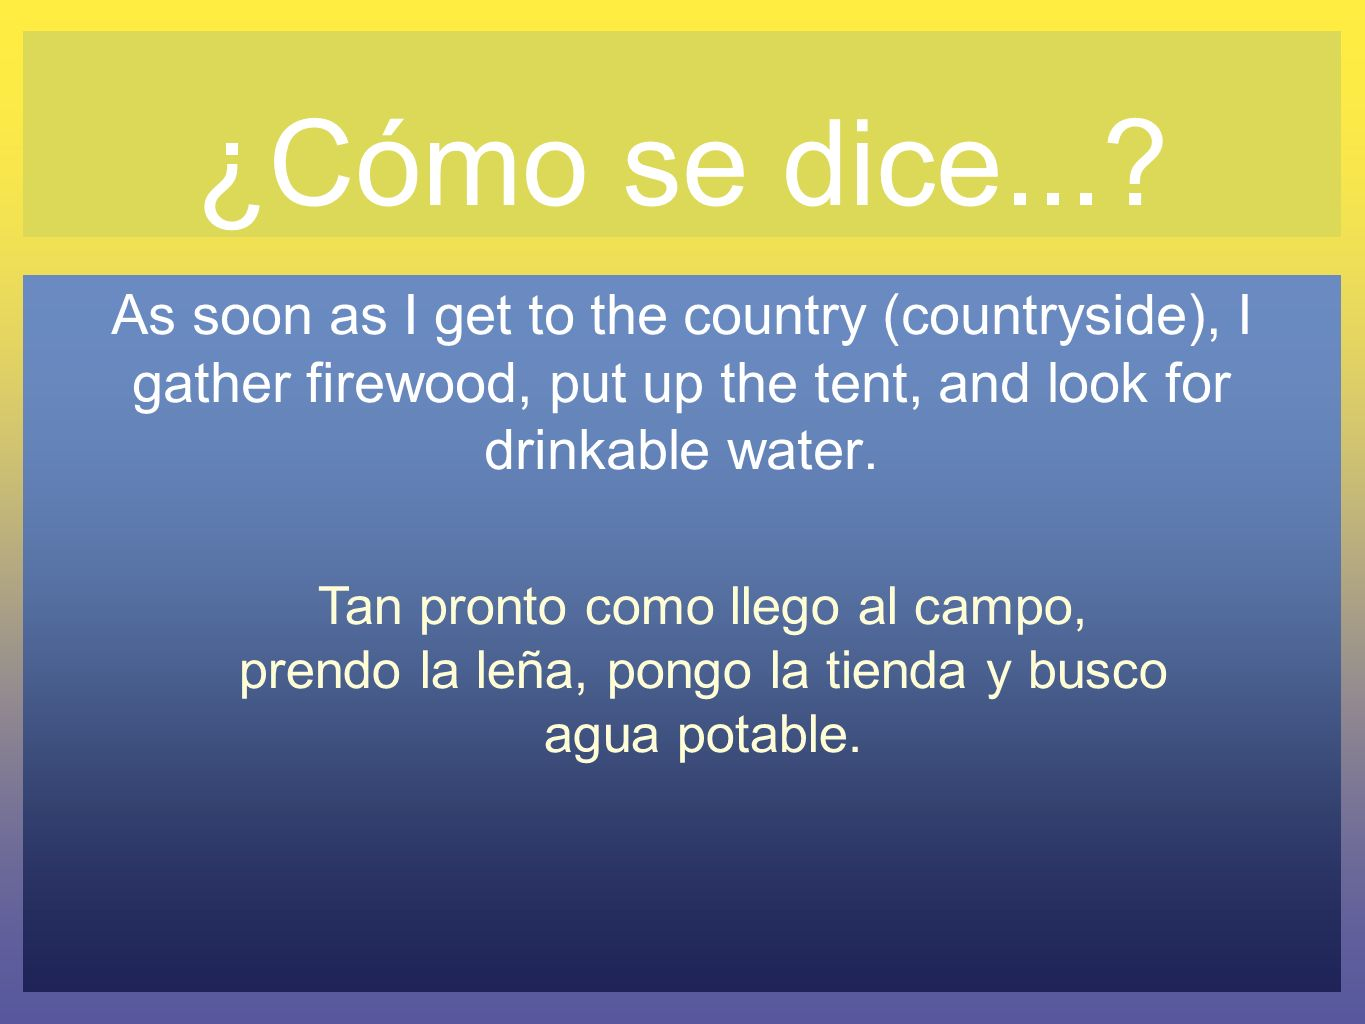 ¿Cómo se dice... As soon as I get to the country (countryside), I gather firewood, put up the tent, and look for drinkable water.